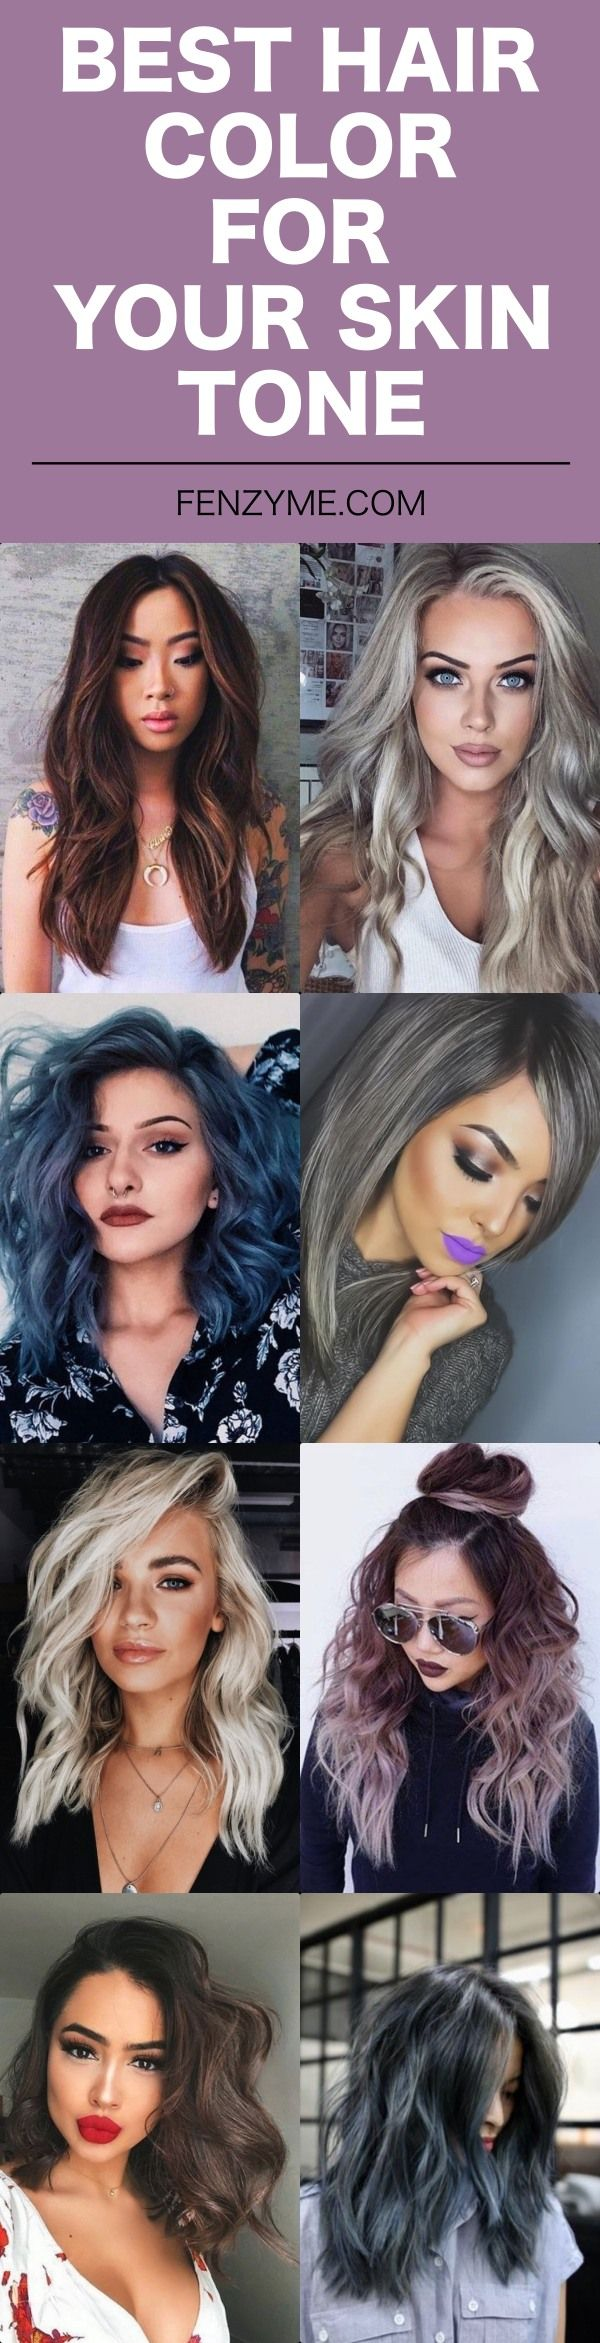 40 Best Hair Color For Your Skin Tone Hair Styles Hair Style Ideas In 2020 Pale Skin Hair Color Cool Hair Color Hair Color For Tan Skin